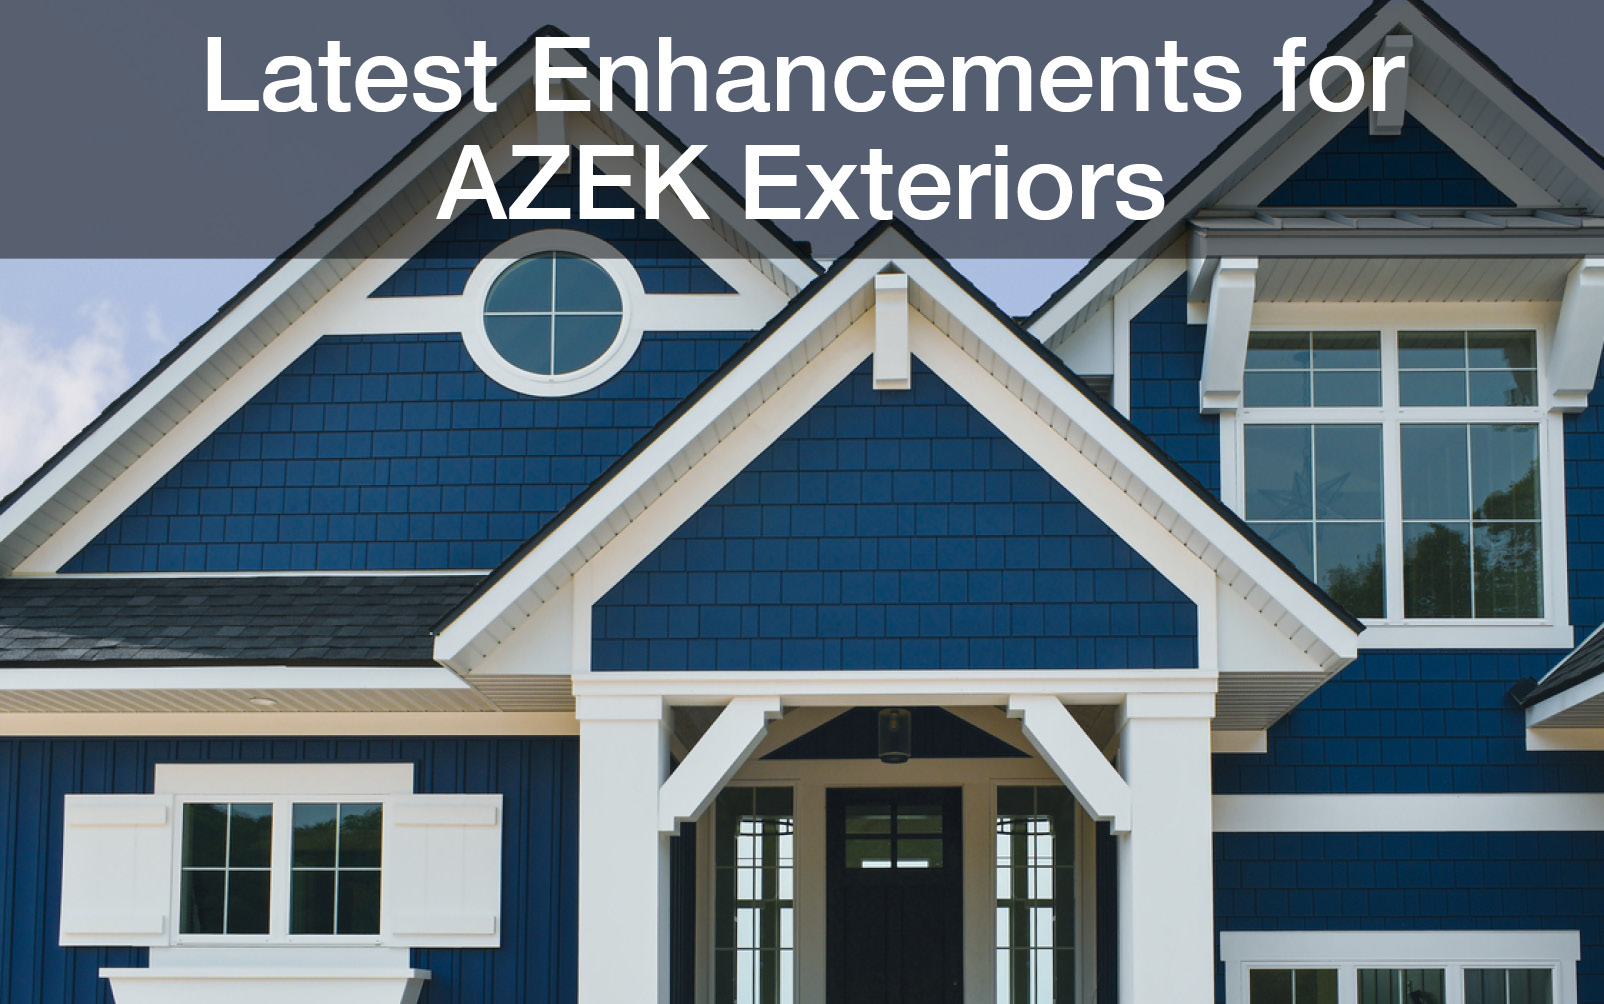 Latest Enhancements for AZEK Exteriors